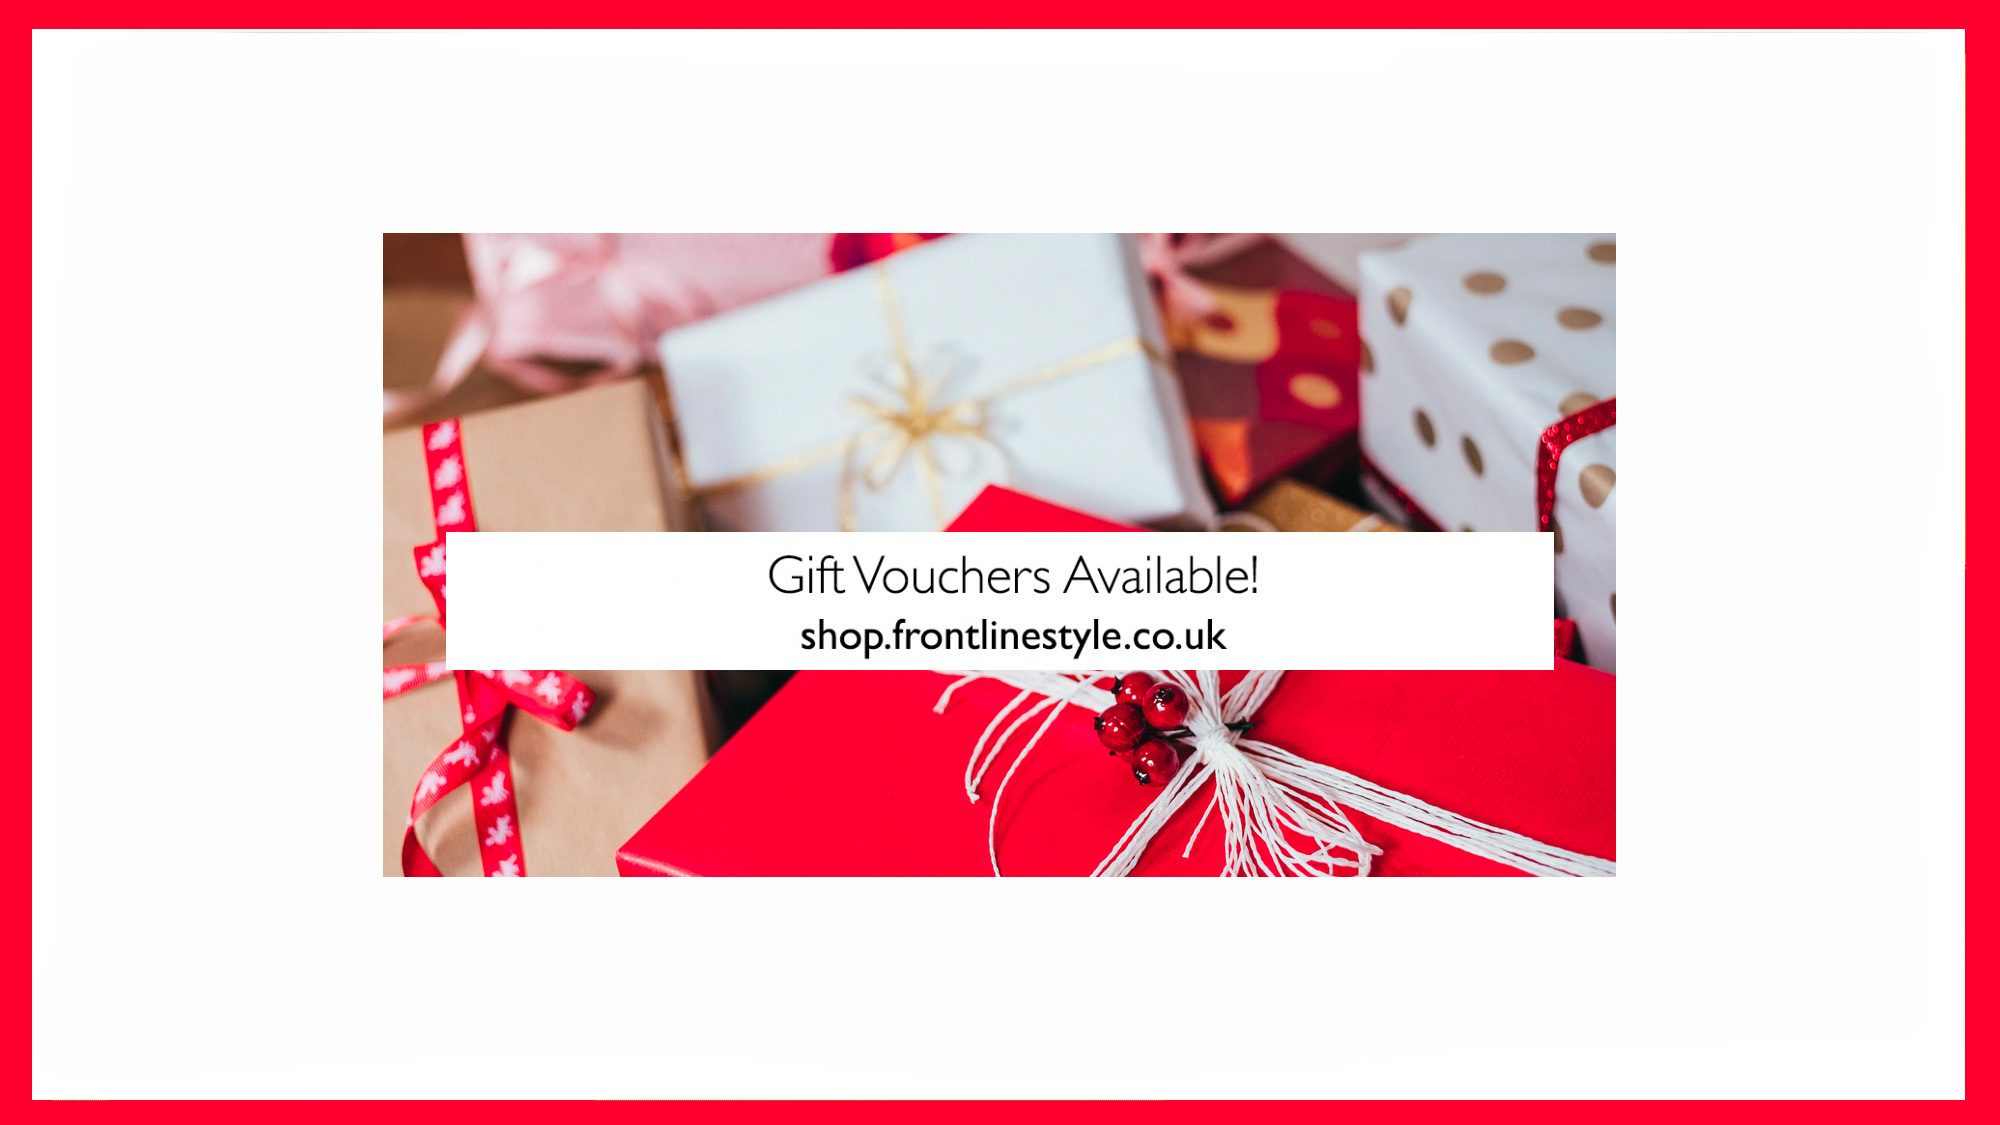 Frontlinestyle Gift Vouchers Available Christmas Banner Red Presents 2019